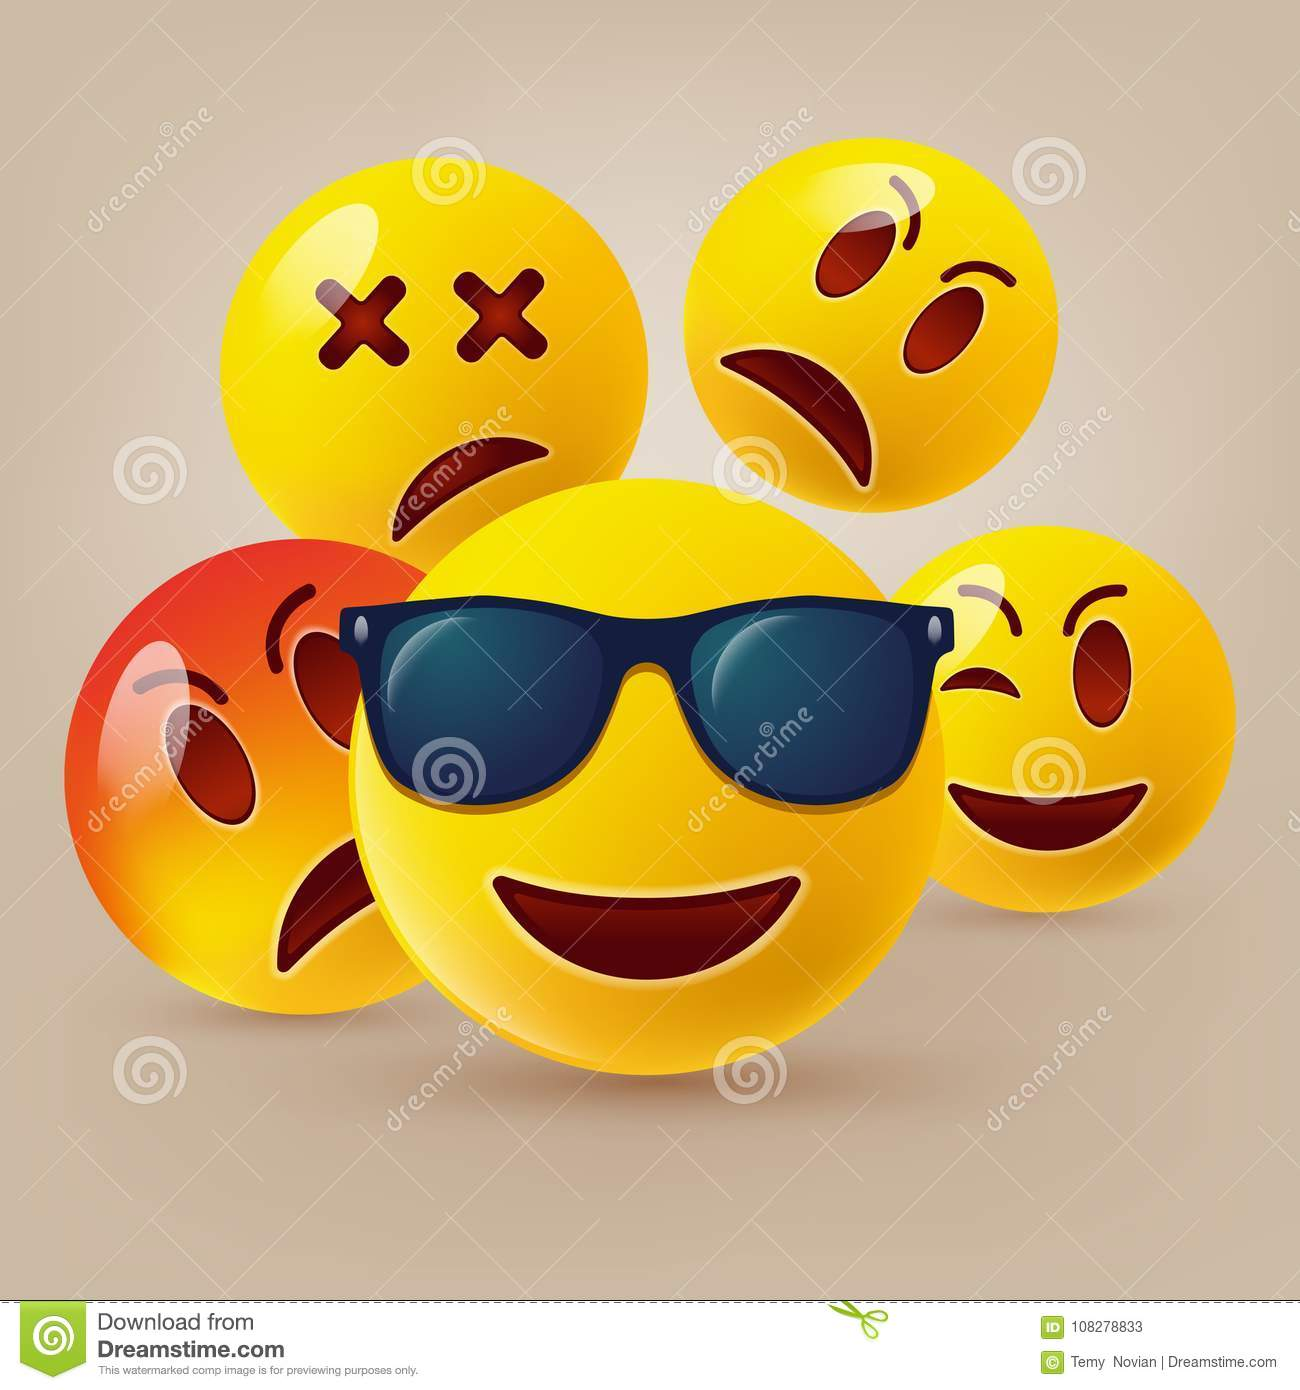 Smiley face icons or yellow emoticons with emotional funny faces in glossy 3D realistic